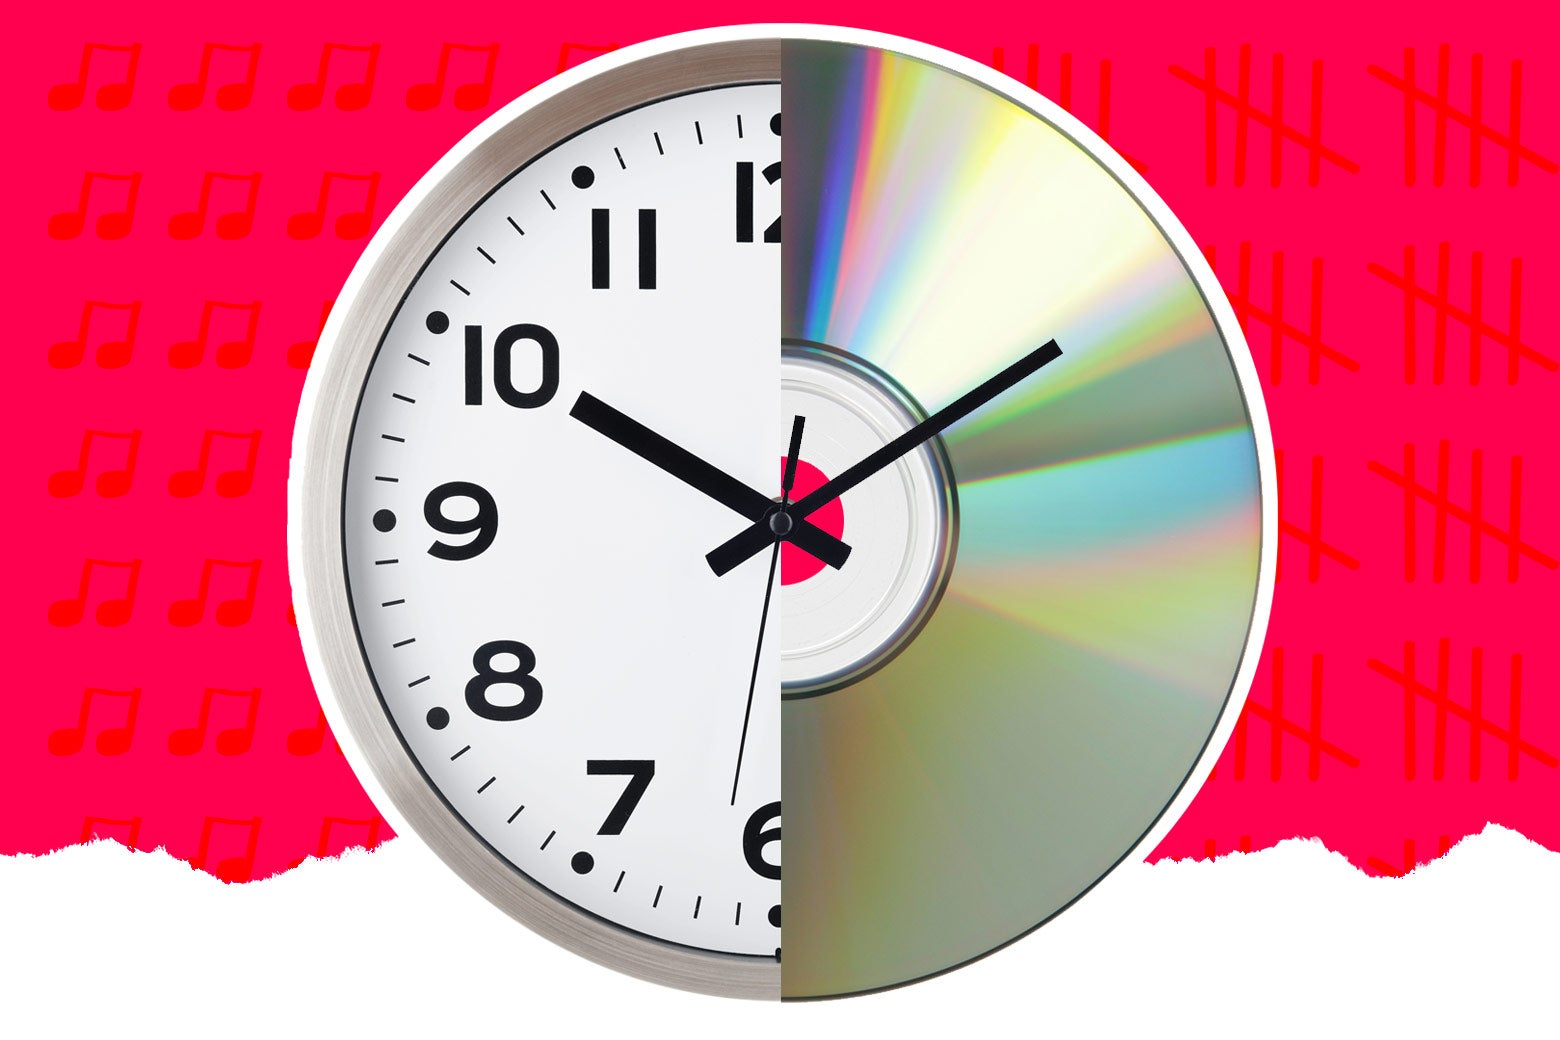 Diptych of a clock and a compact disc.